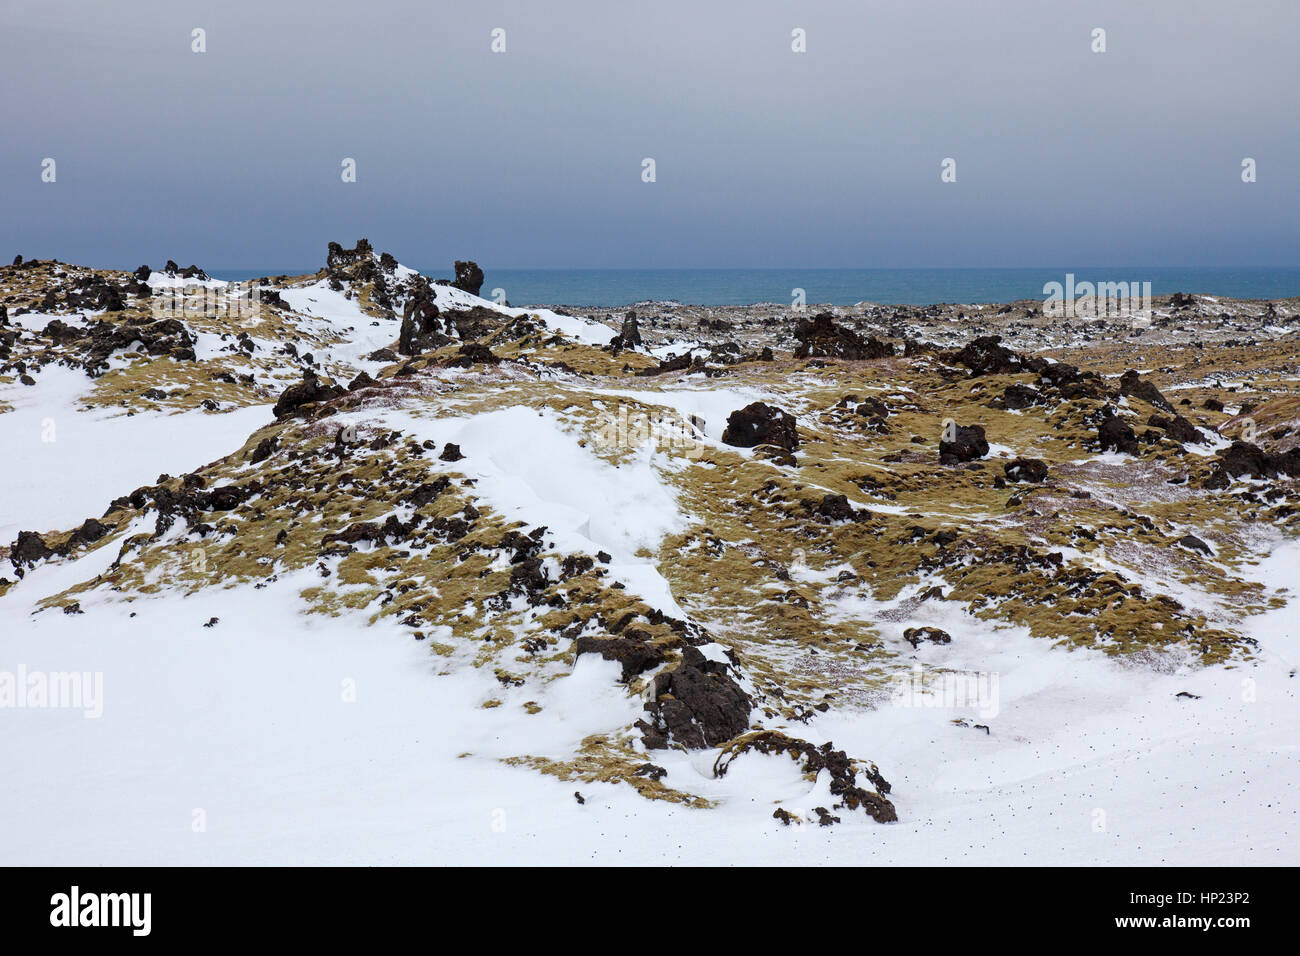 Lava field covered in snow at the Snæfellsjökull National Park in winter on the Snæfellsnes peninsula - Stock Image